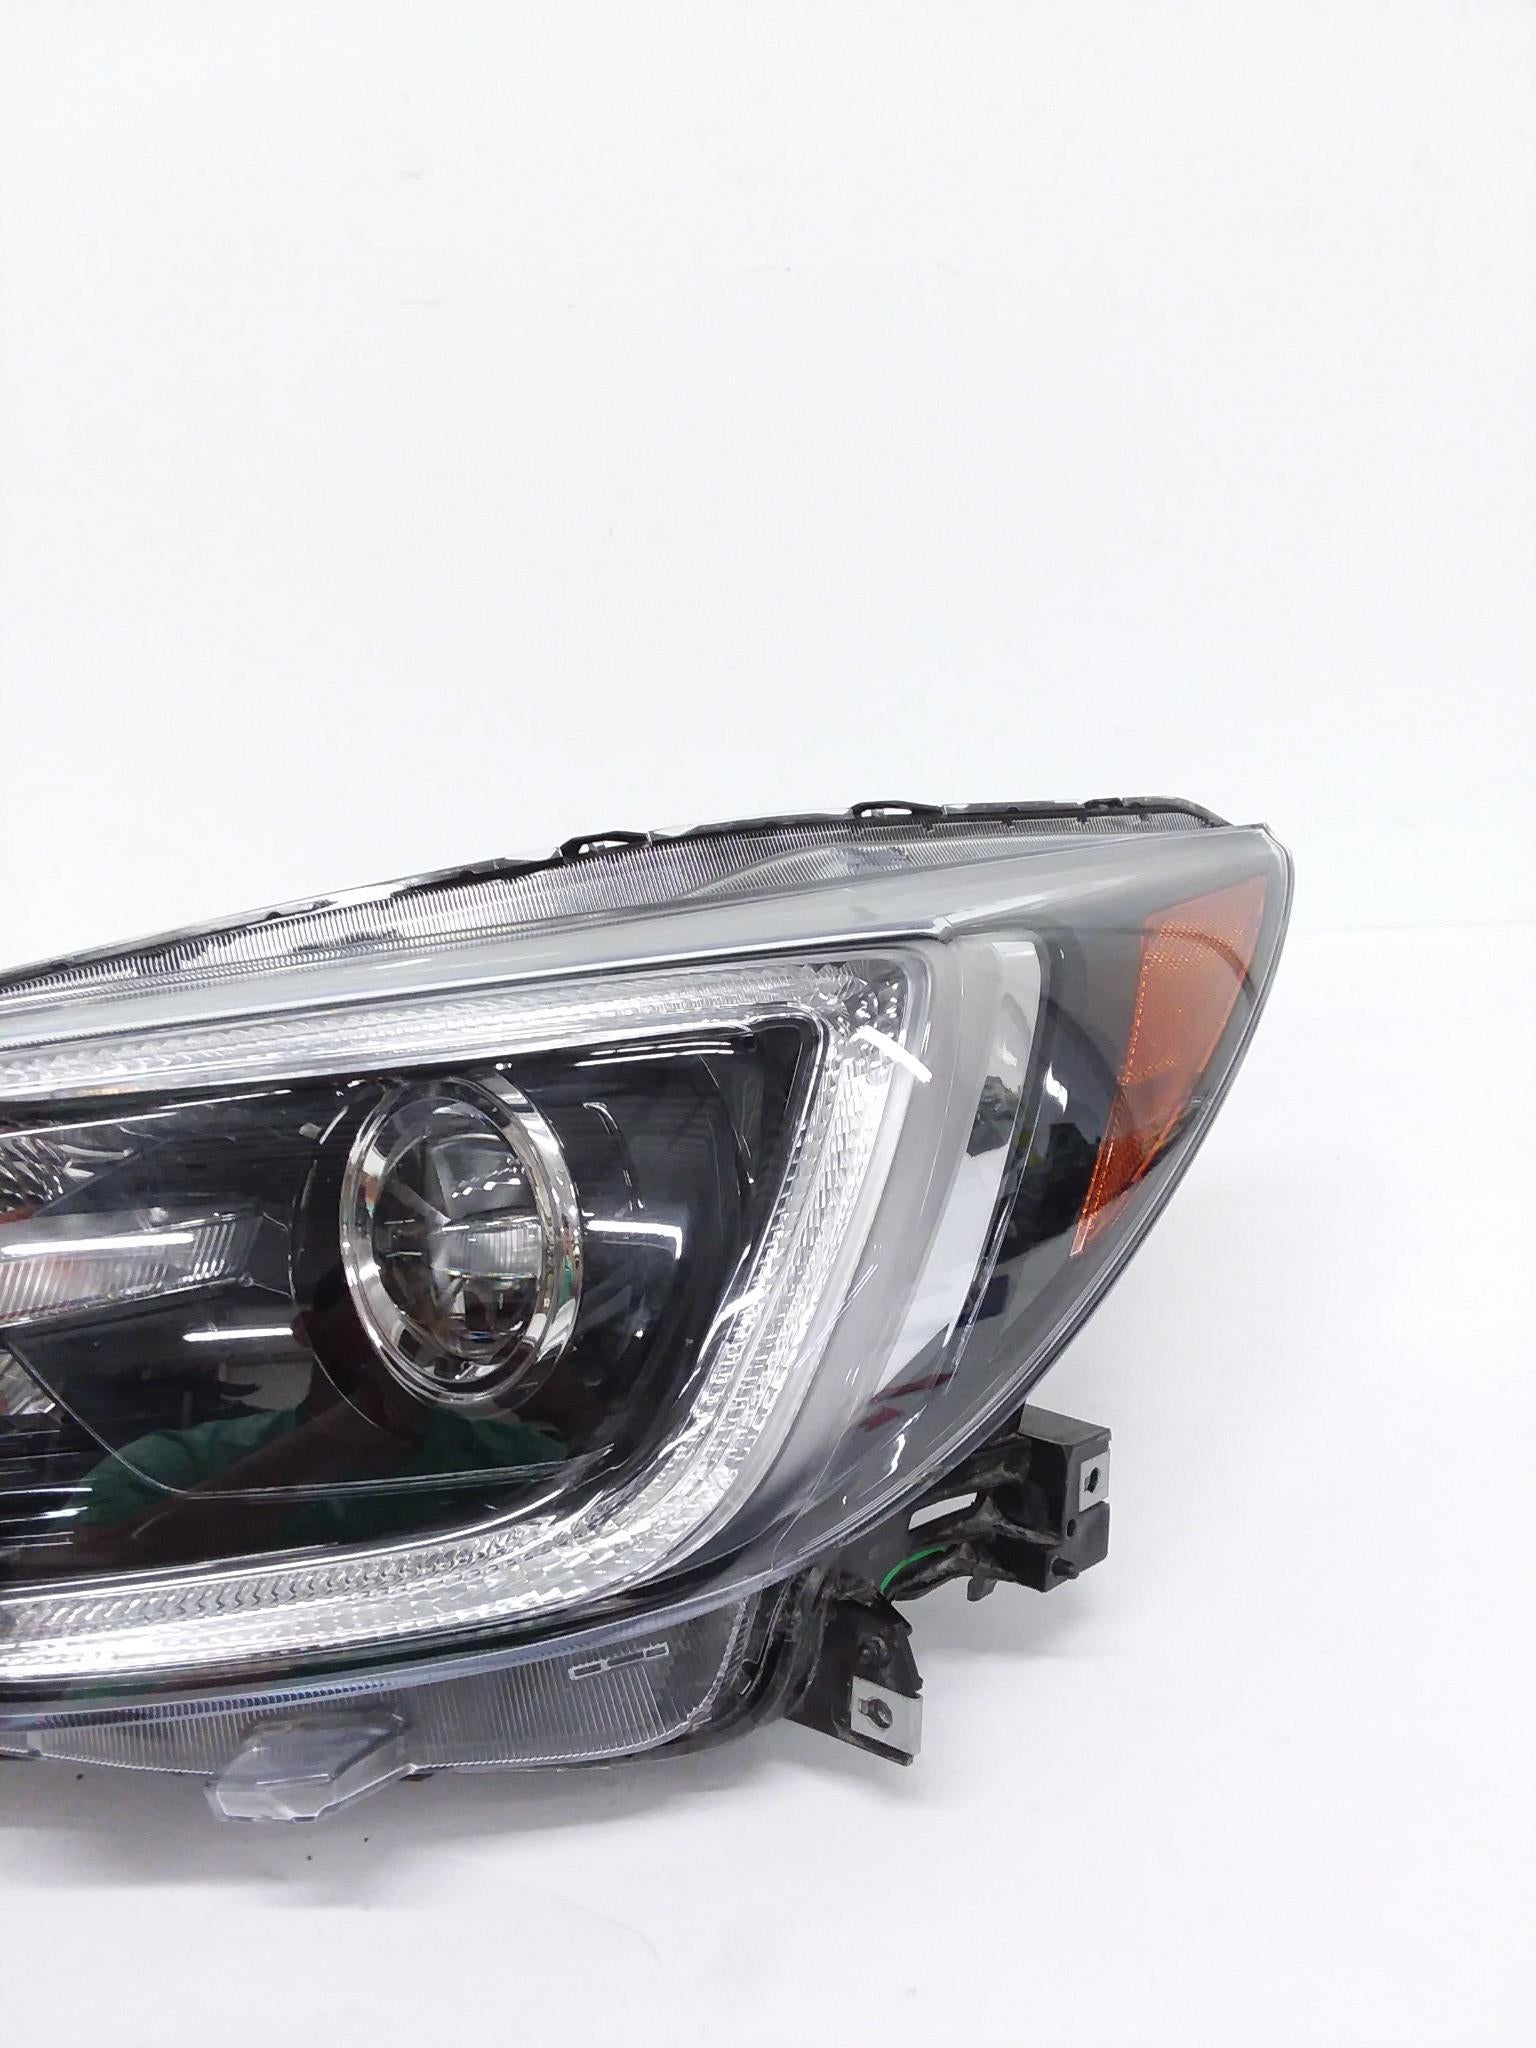 2018 - 2019 Subaru Legacy Outback Headlight Left Driver Side Full LED W ADAPTIVE